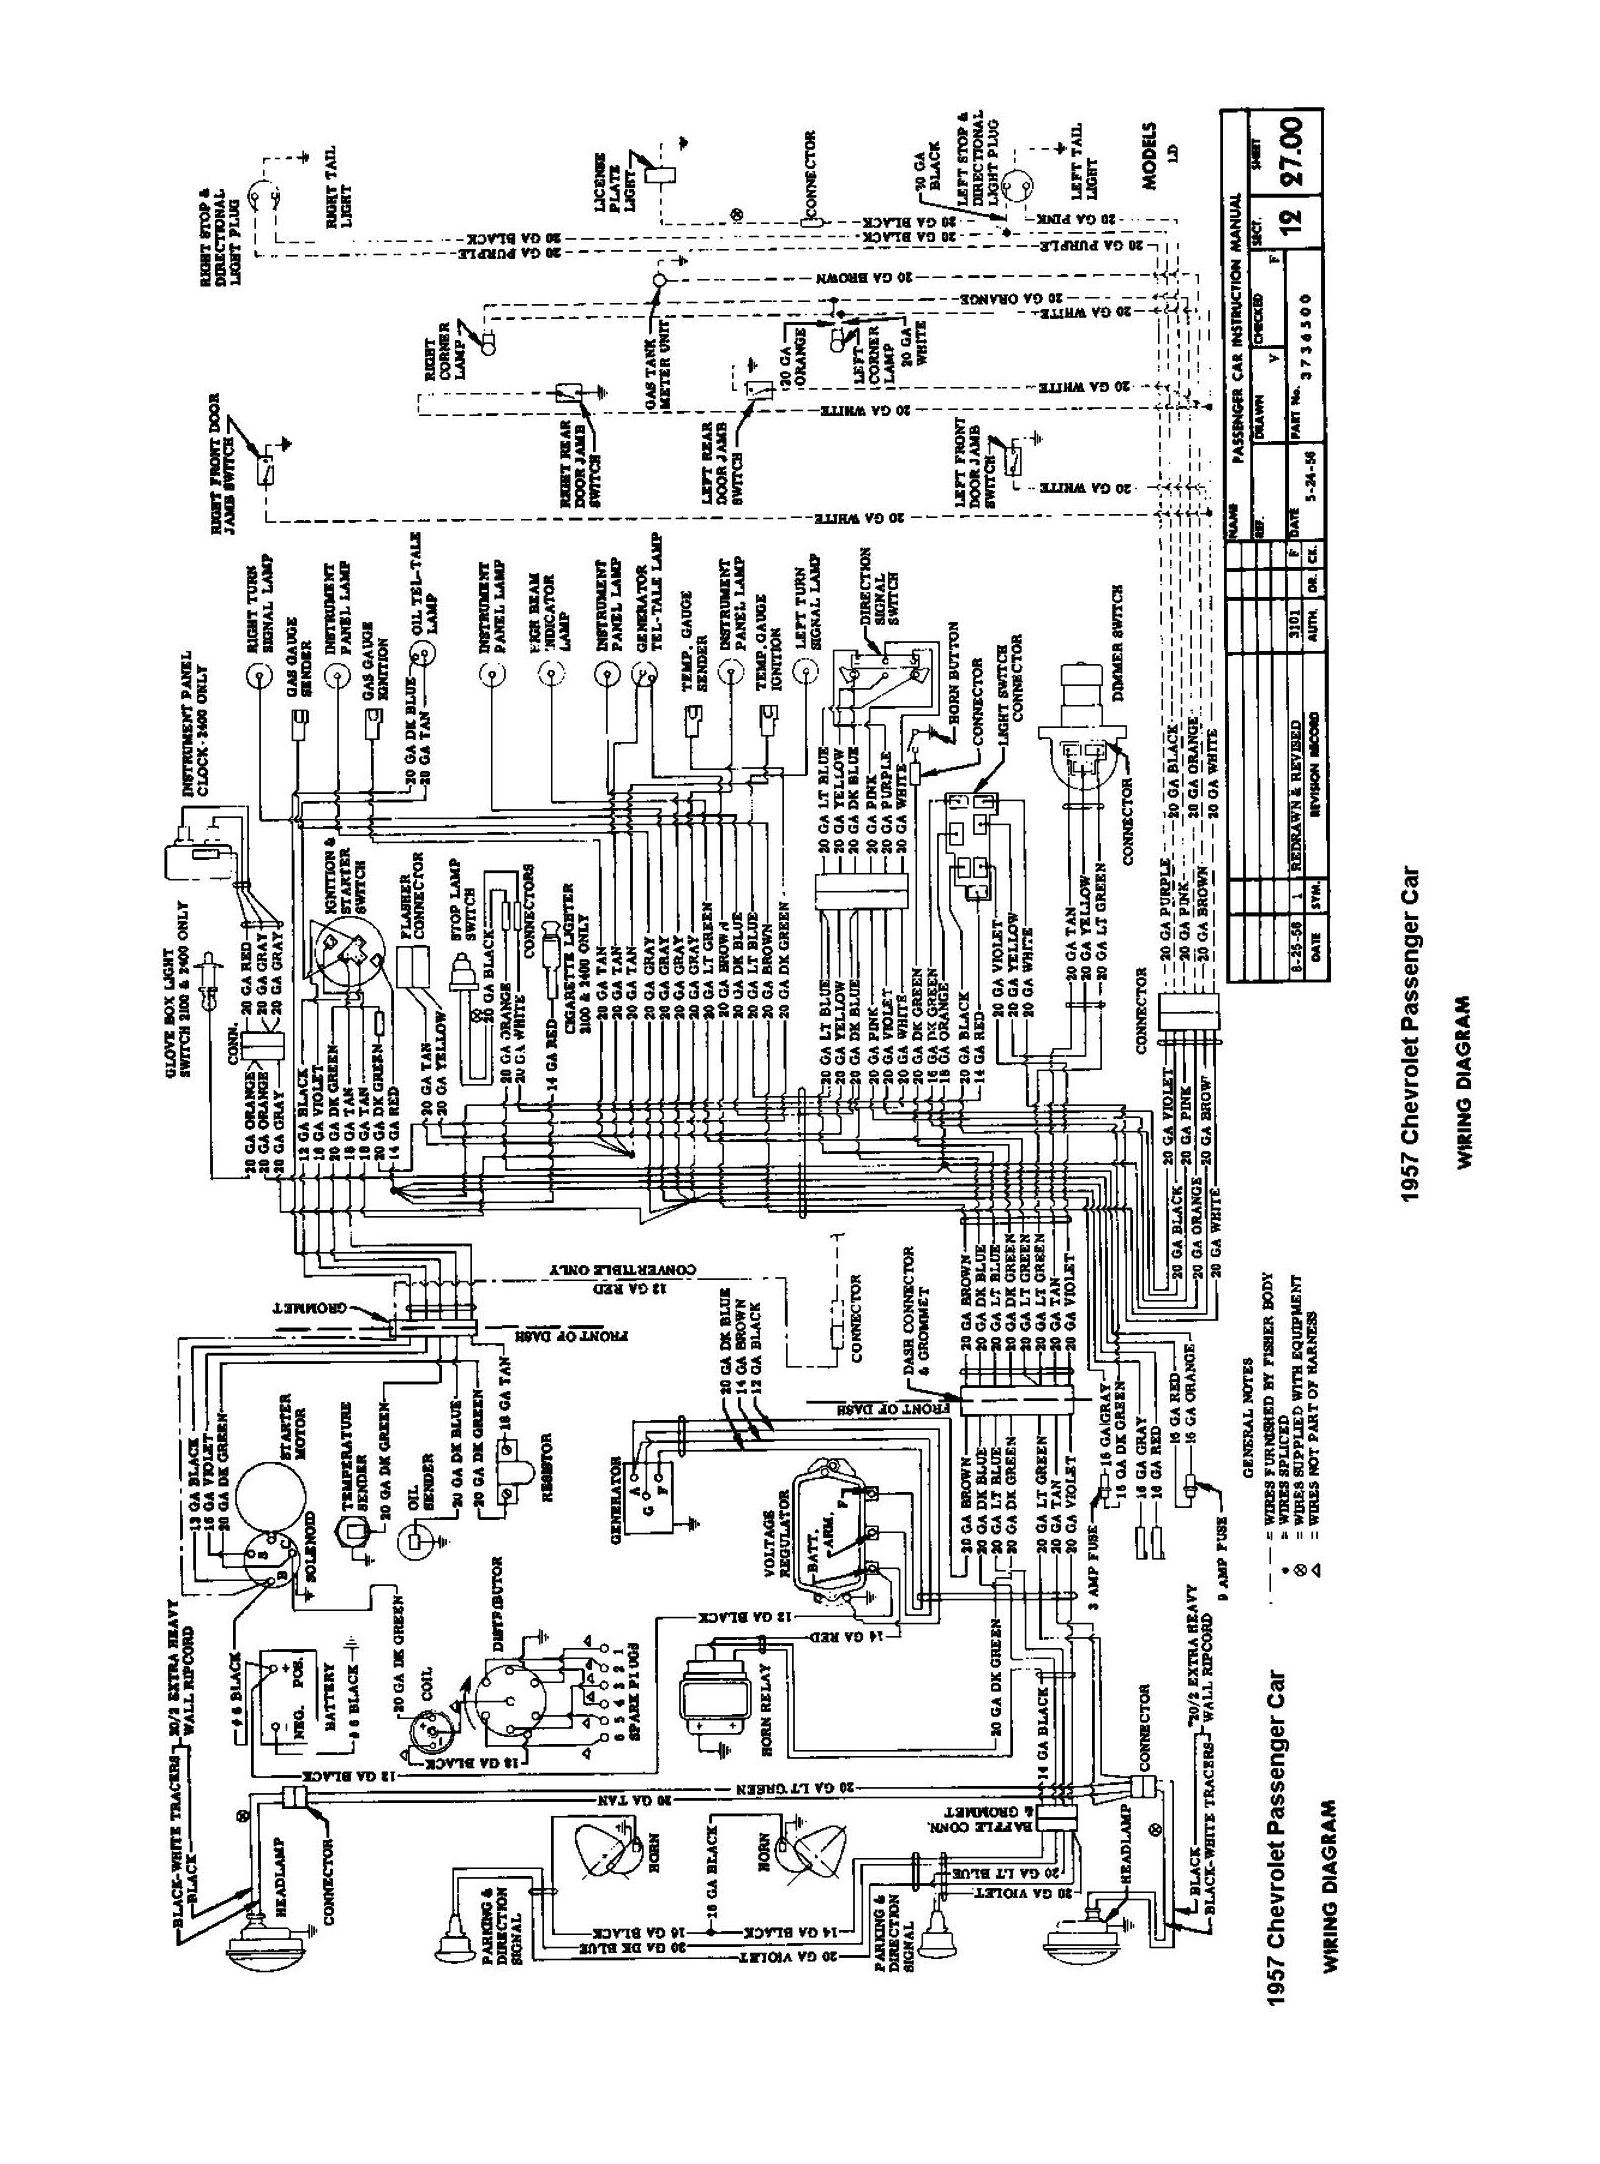 57car chevy wiring diagrams chevy radio wiring \u2022 wiring diagrams j GM Factory Wiring Diagram at nearapp.co